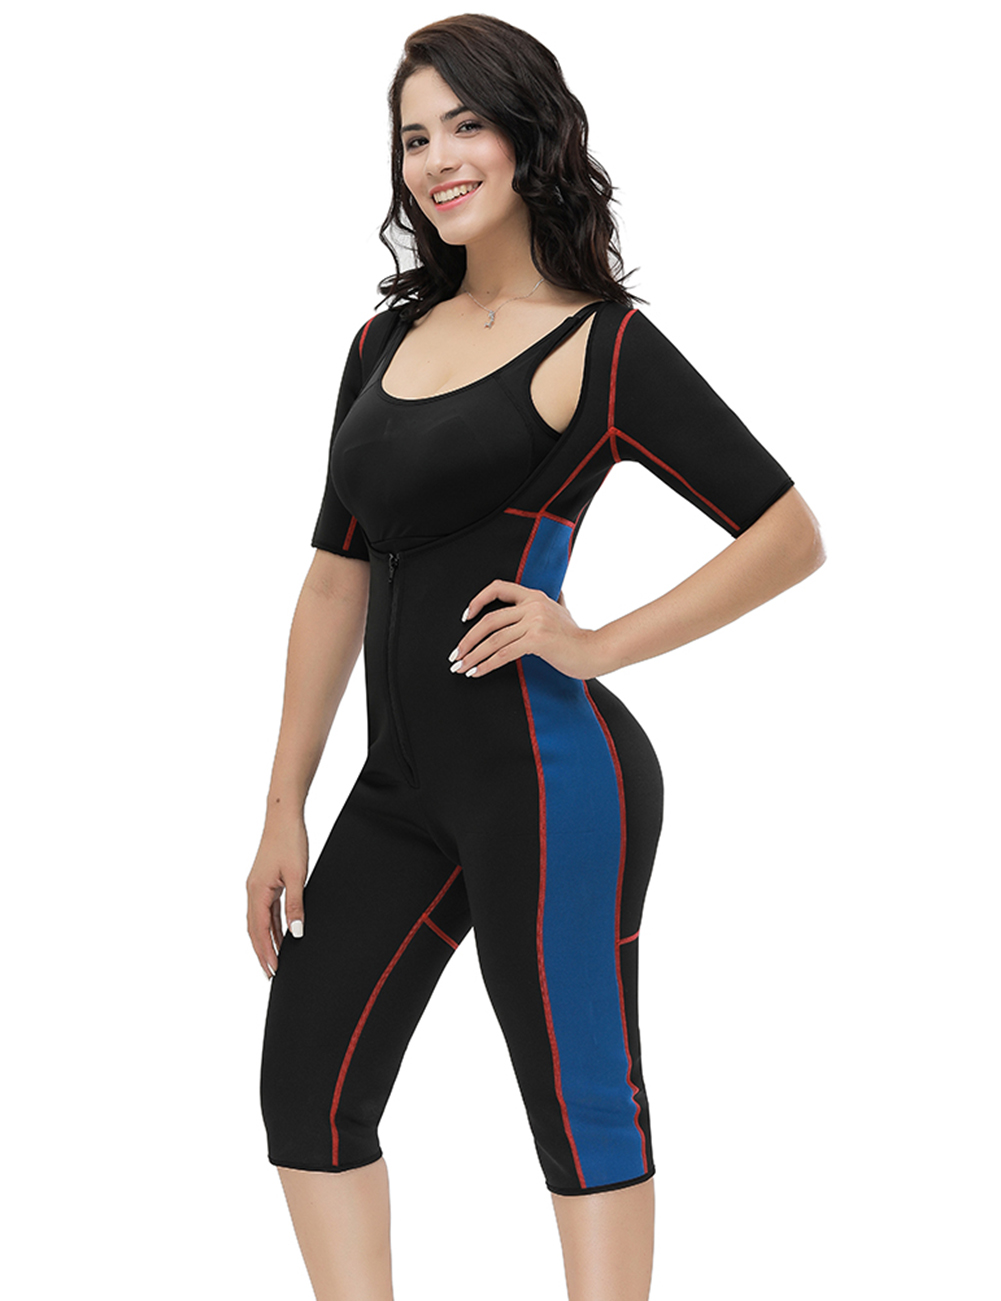 //cdn.affectcloud.com/hexinfashion/upload/imgs/Shaper/Body_Shaper/LB40047-13A/LB40047-13A-201911055dc13831adaff.jpg